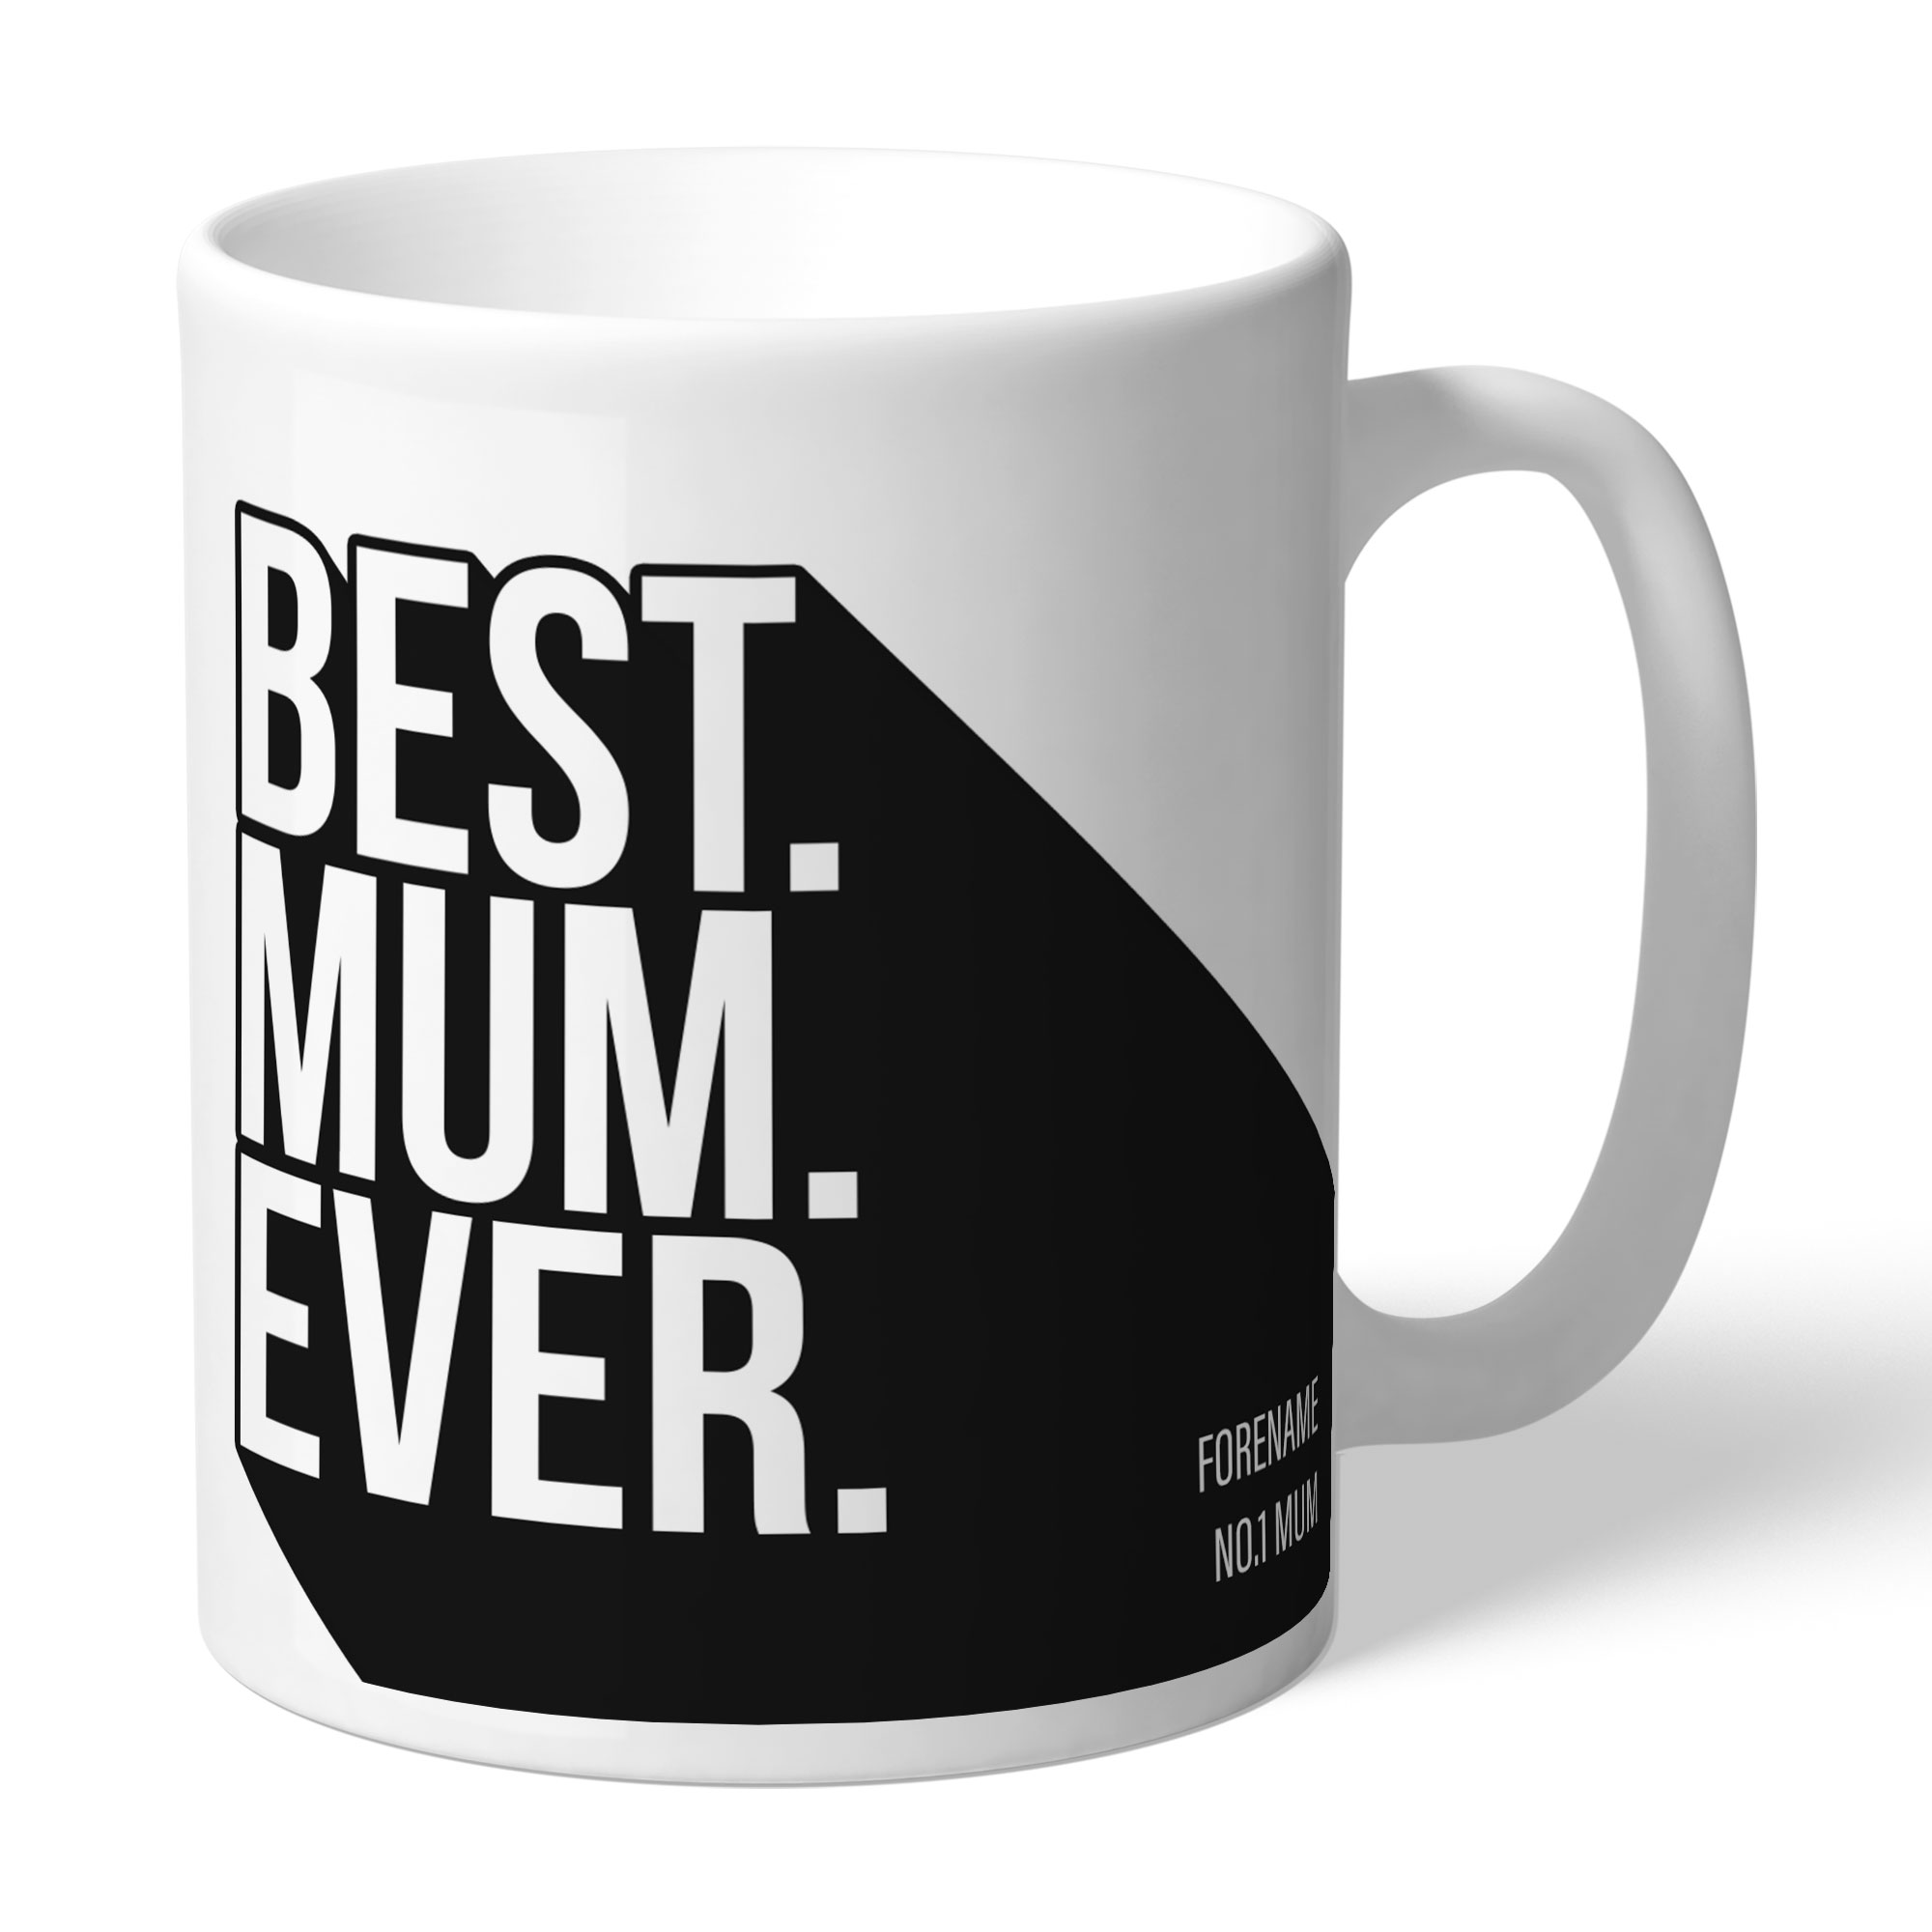 Swansea City AFC Best Mum Ever Mug